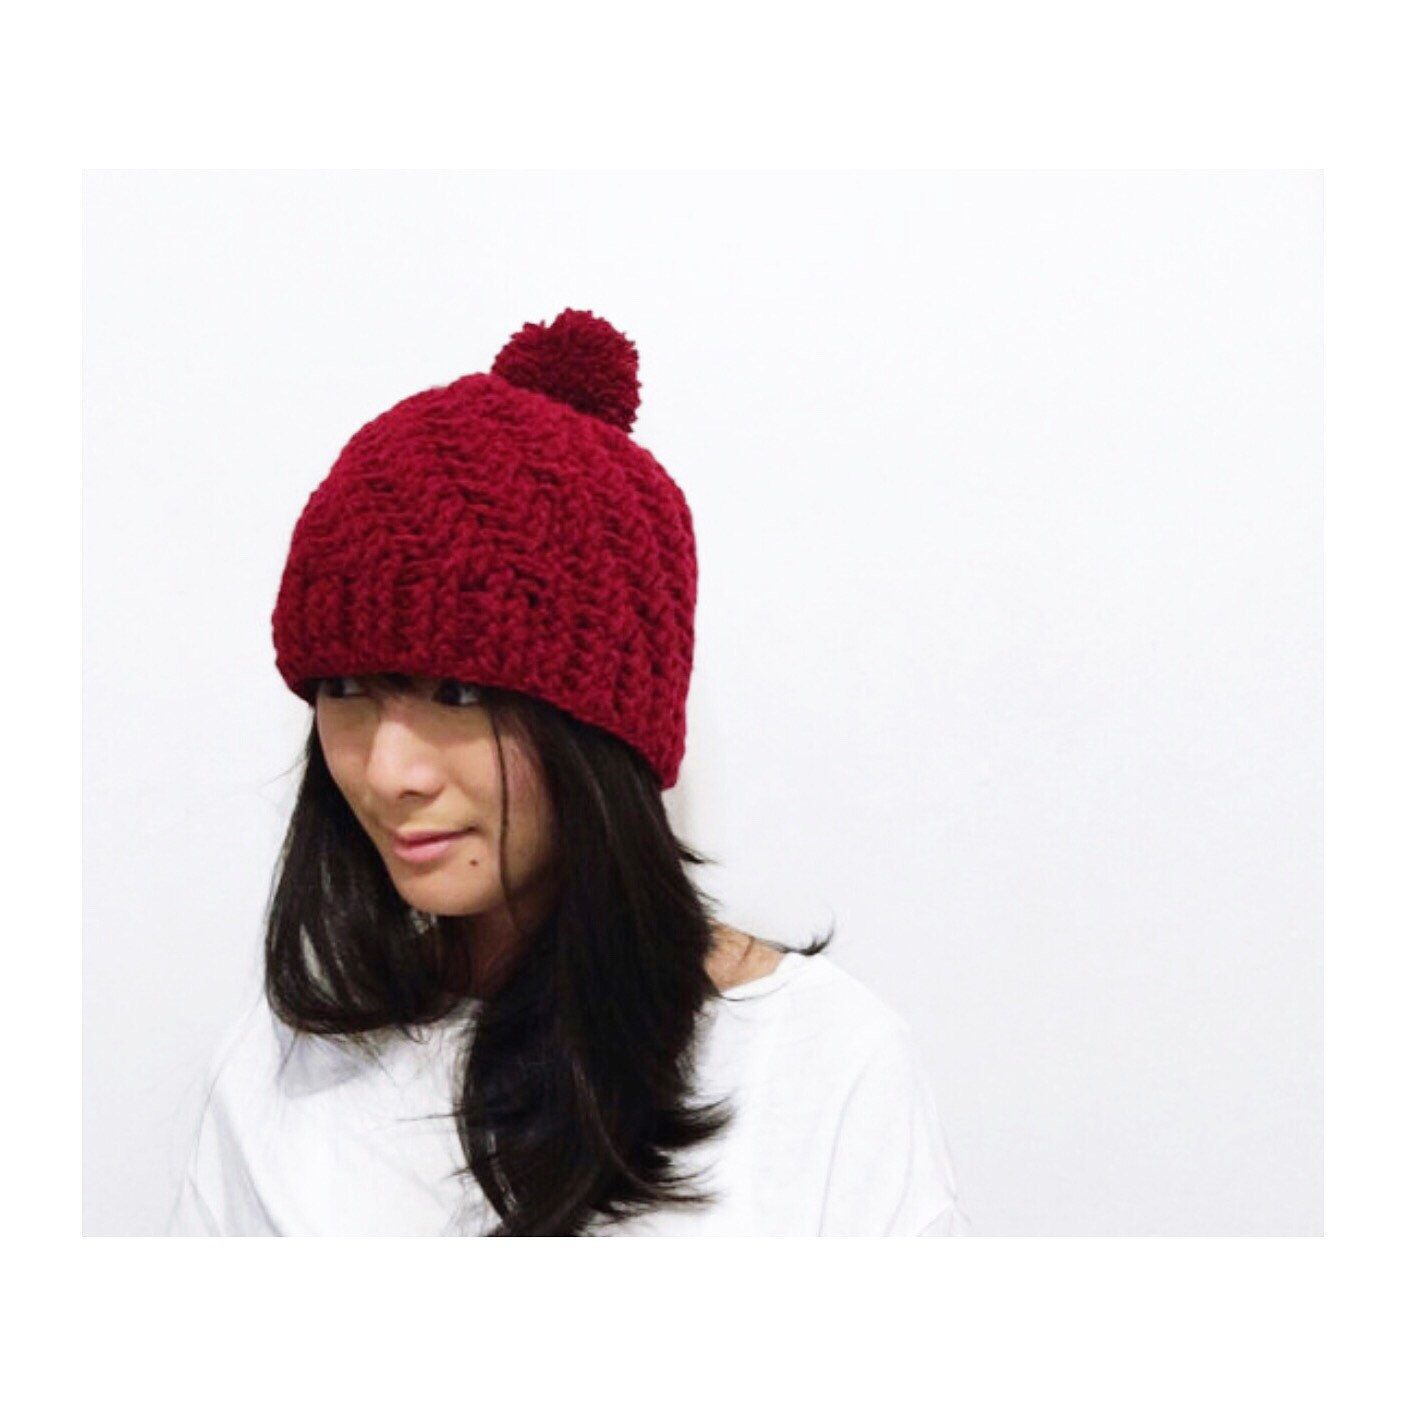 568398ece42806 In honor of the dropping temperatures (I'm wearing socks in bed tonight), our  winter hats are now listed! Guaranteed these babies will keep you warm and  ...